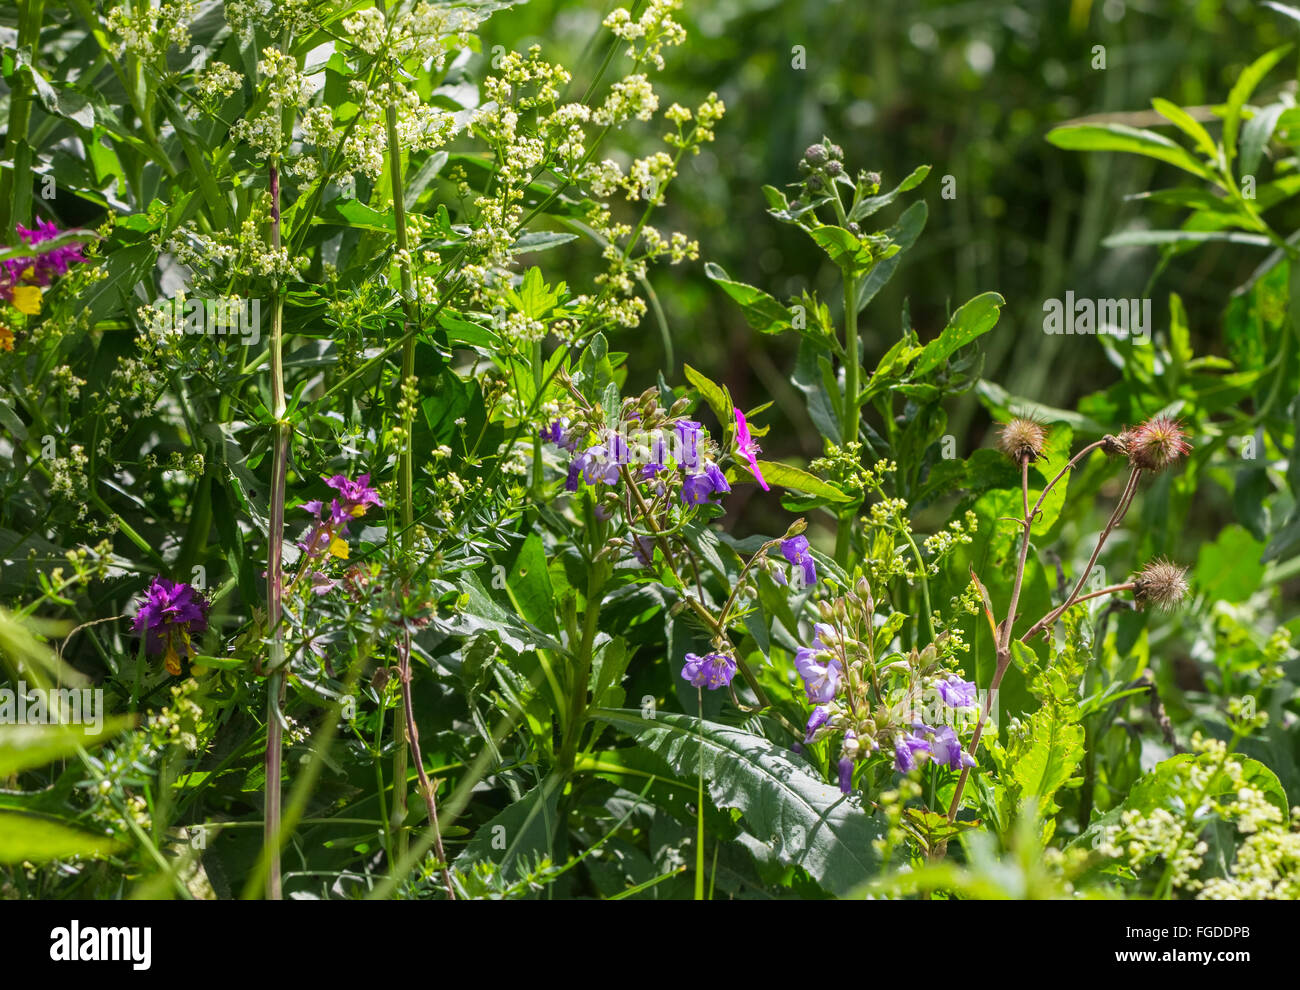 Wild flowers on sunny summer day in forest - Stock Image